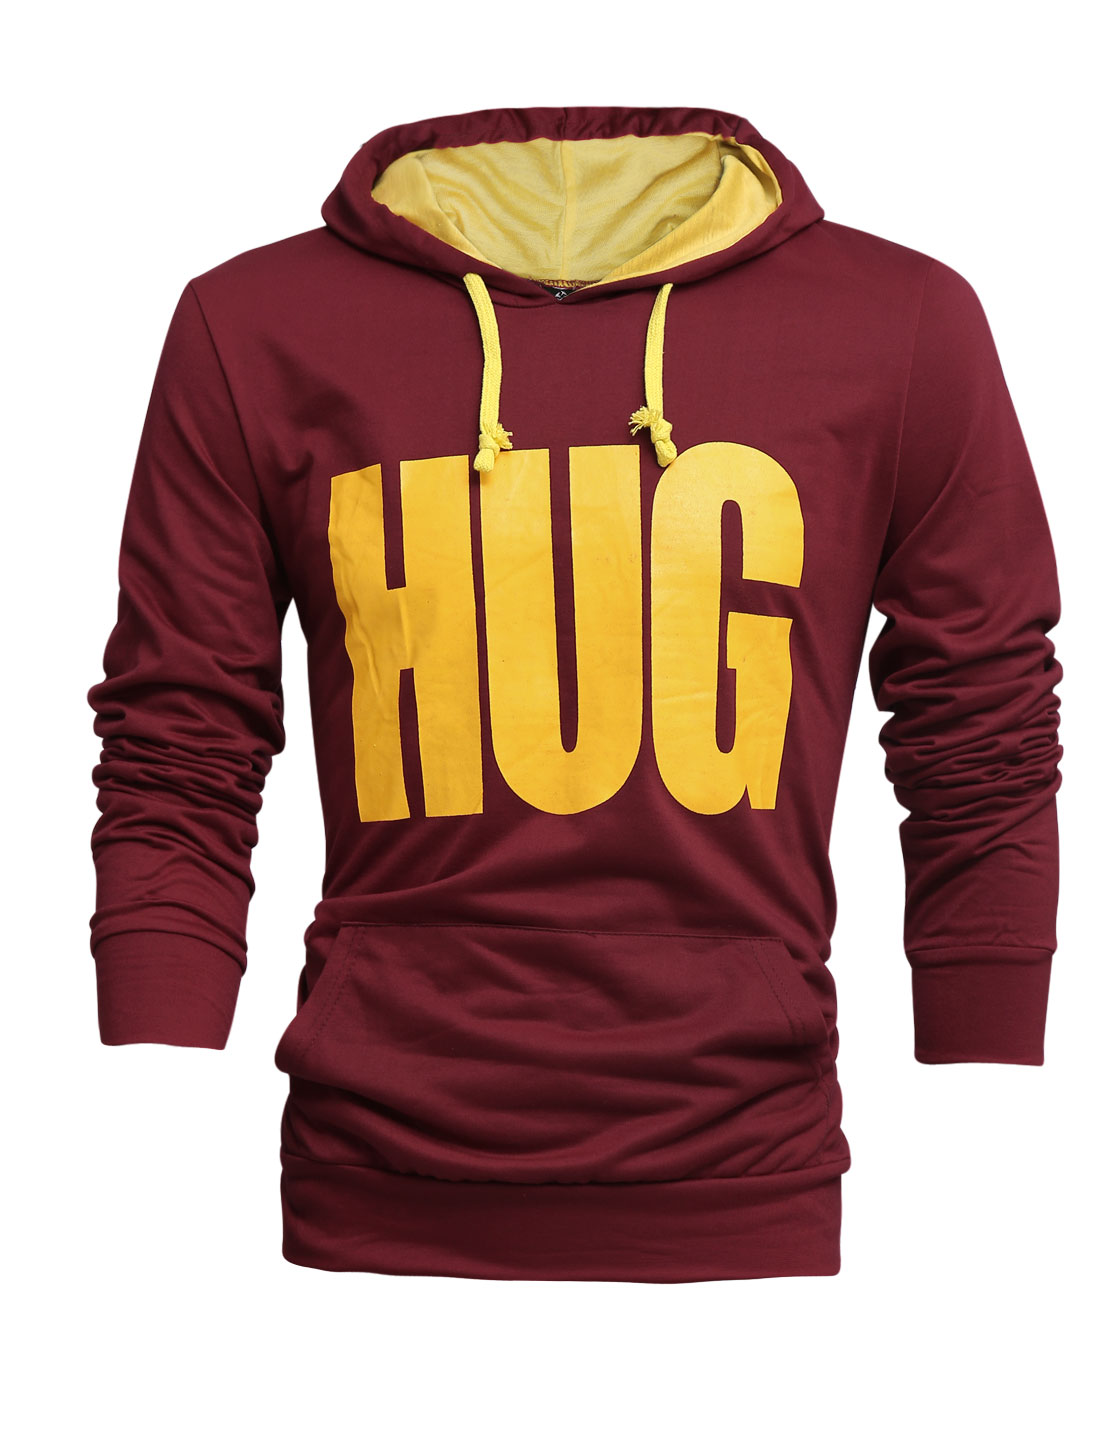 Men Drawstring Hooded Letters Prints Leisure Top Shirt Burgundy M